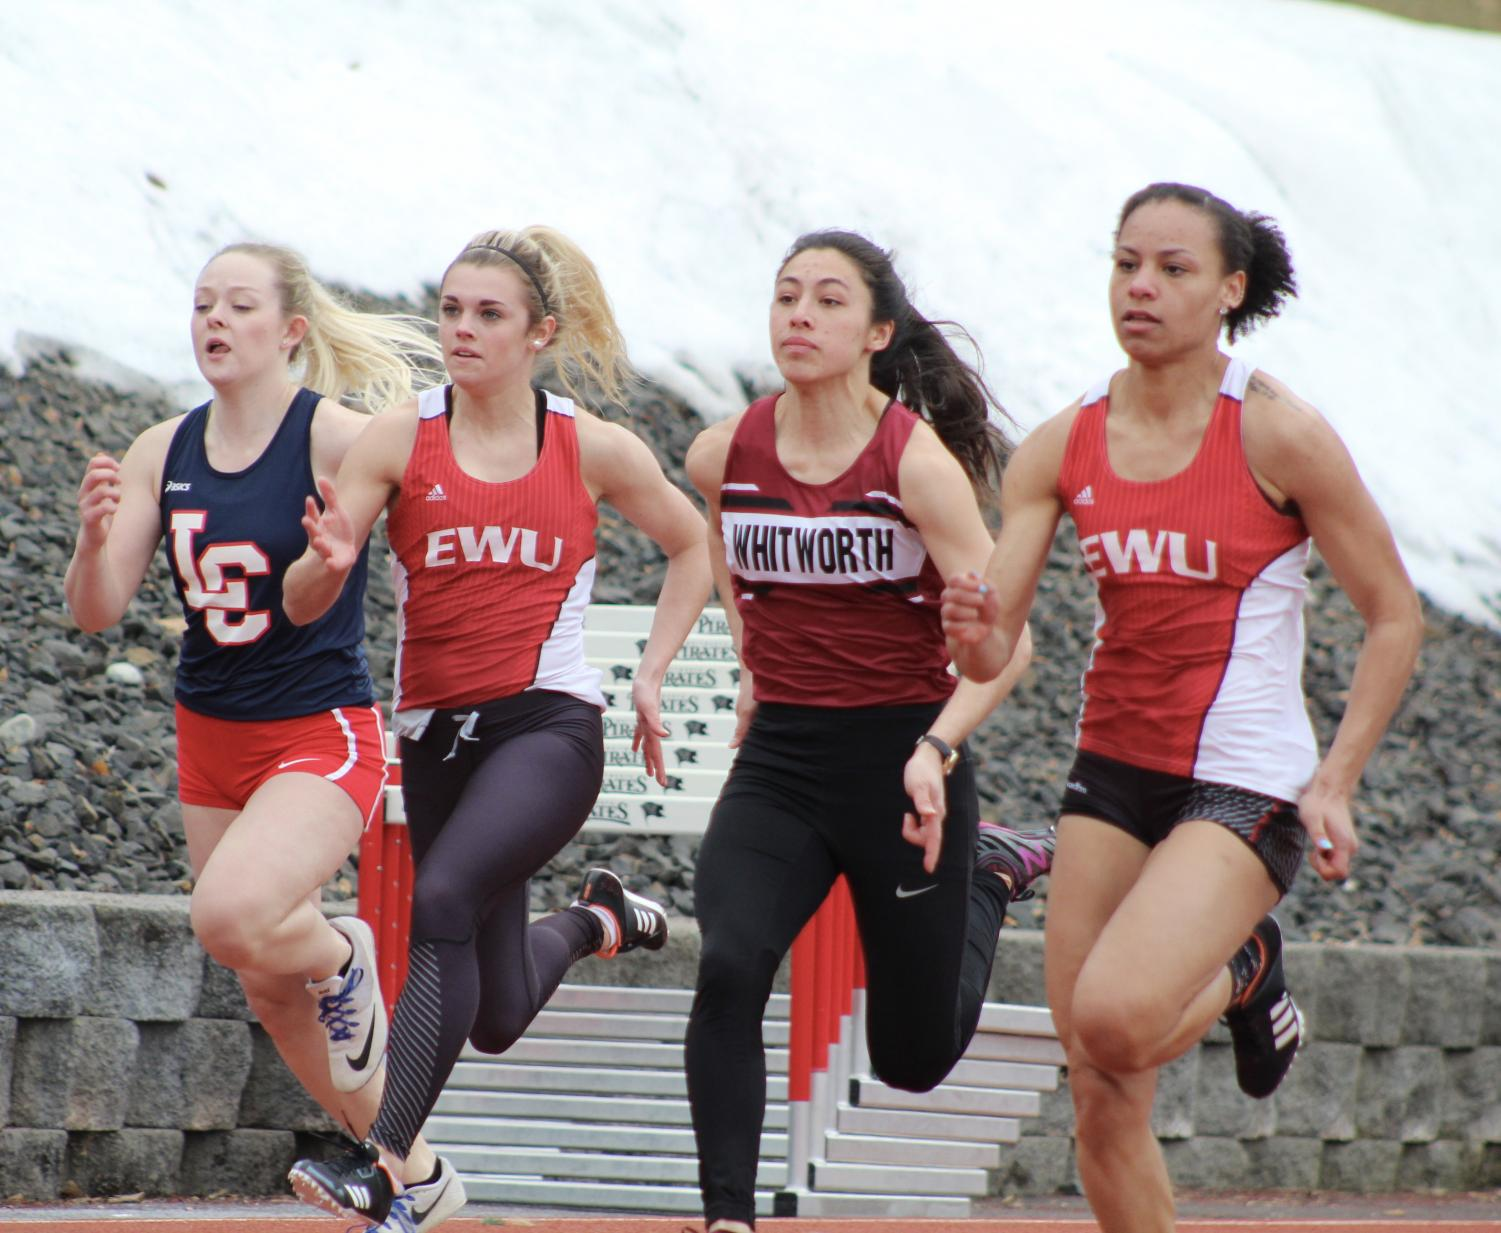 Freshmen sprinters Bella Millsap (left) and Alexis Rolan (right) competing at the Buc Scoring Meet on March 17. At the Texas Relays on March 30, Rolan ran the 100 meters with a time of 11.56 seconds (the second fastest time in school history).